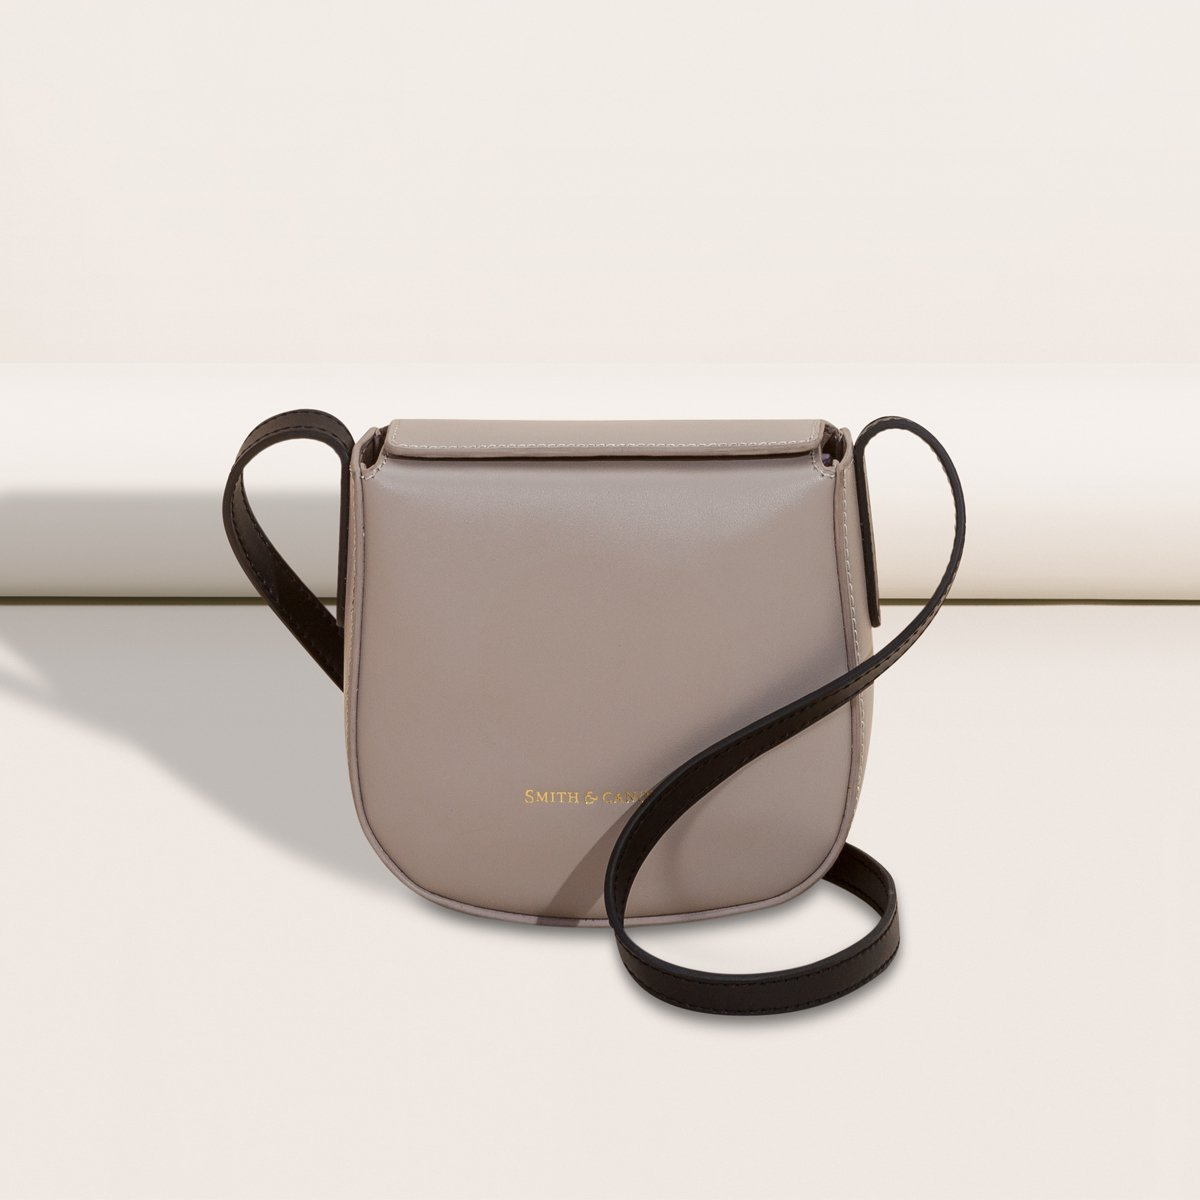 #Follow &amp; #RT to #WIN the #luxuryleather Josephine Crossbody~ T&amp;Cs   http:// goo.gl/7esE5Y  &nbsp;       (closes 24/04 @12pm) #competition #giveaway #freebie<br>http://pic.twitter.com/wka9CtK5jG